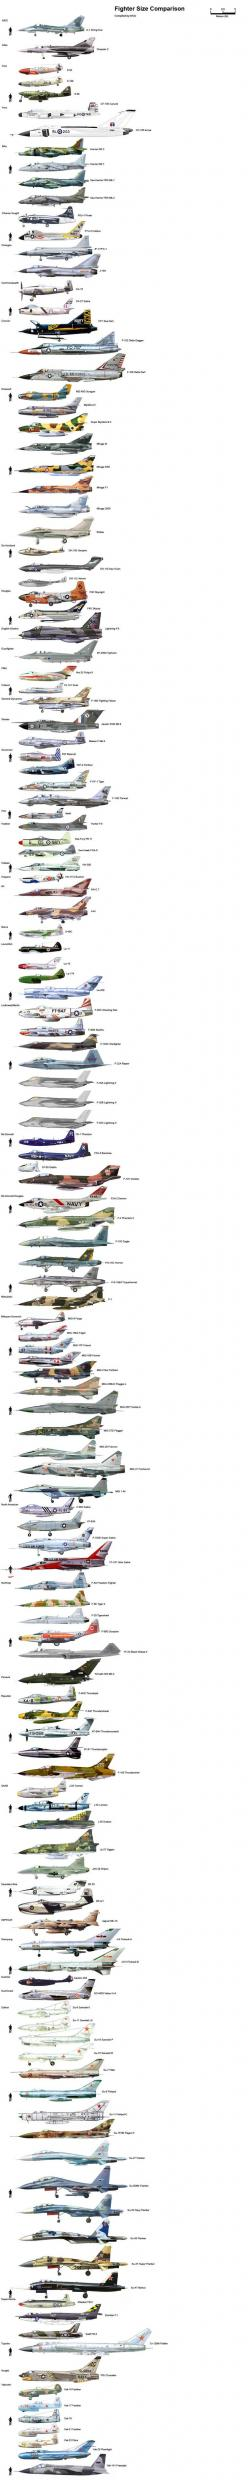 Patterns of International Plane's; Size & Scale Comparisons: Fighter Planes Jets, International Plane, Aircraft, War Planes, Fighter Jet, Airplanes ️, Plane Comparisons, Military Airplane